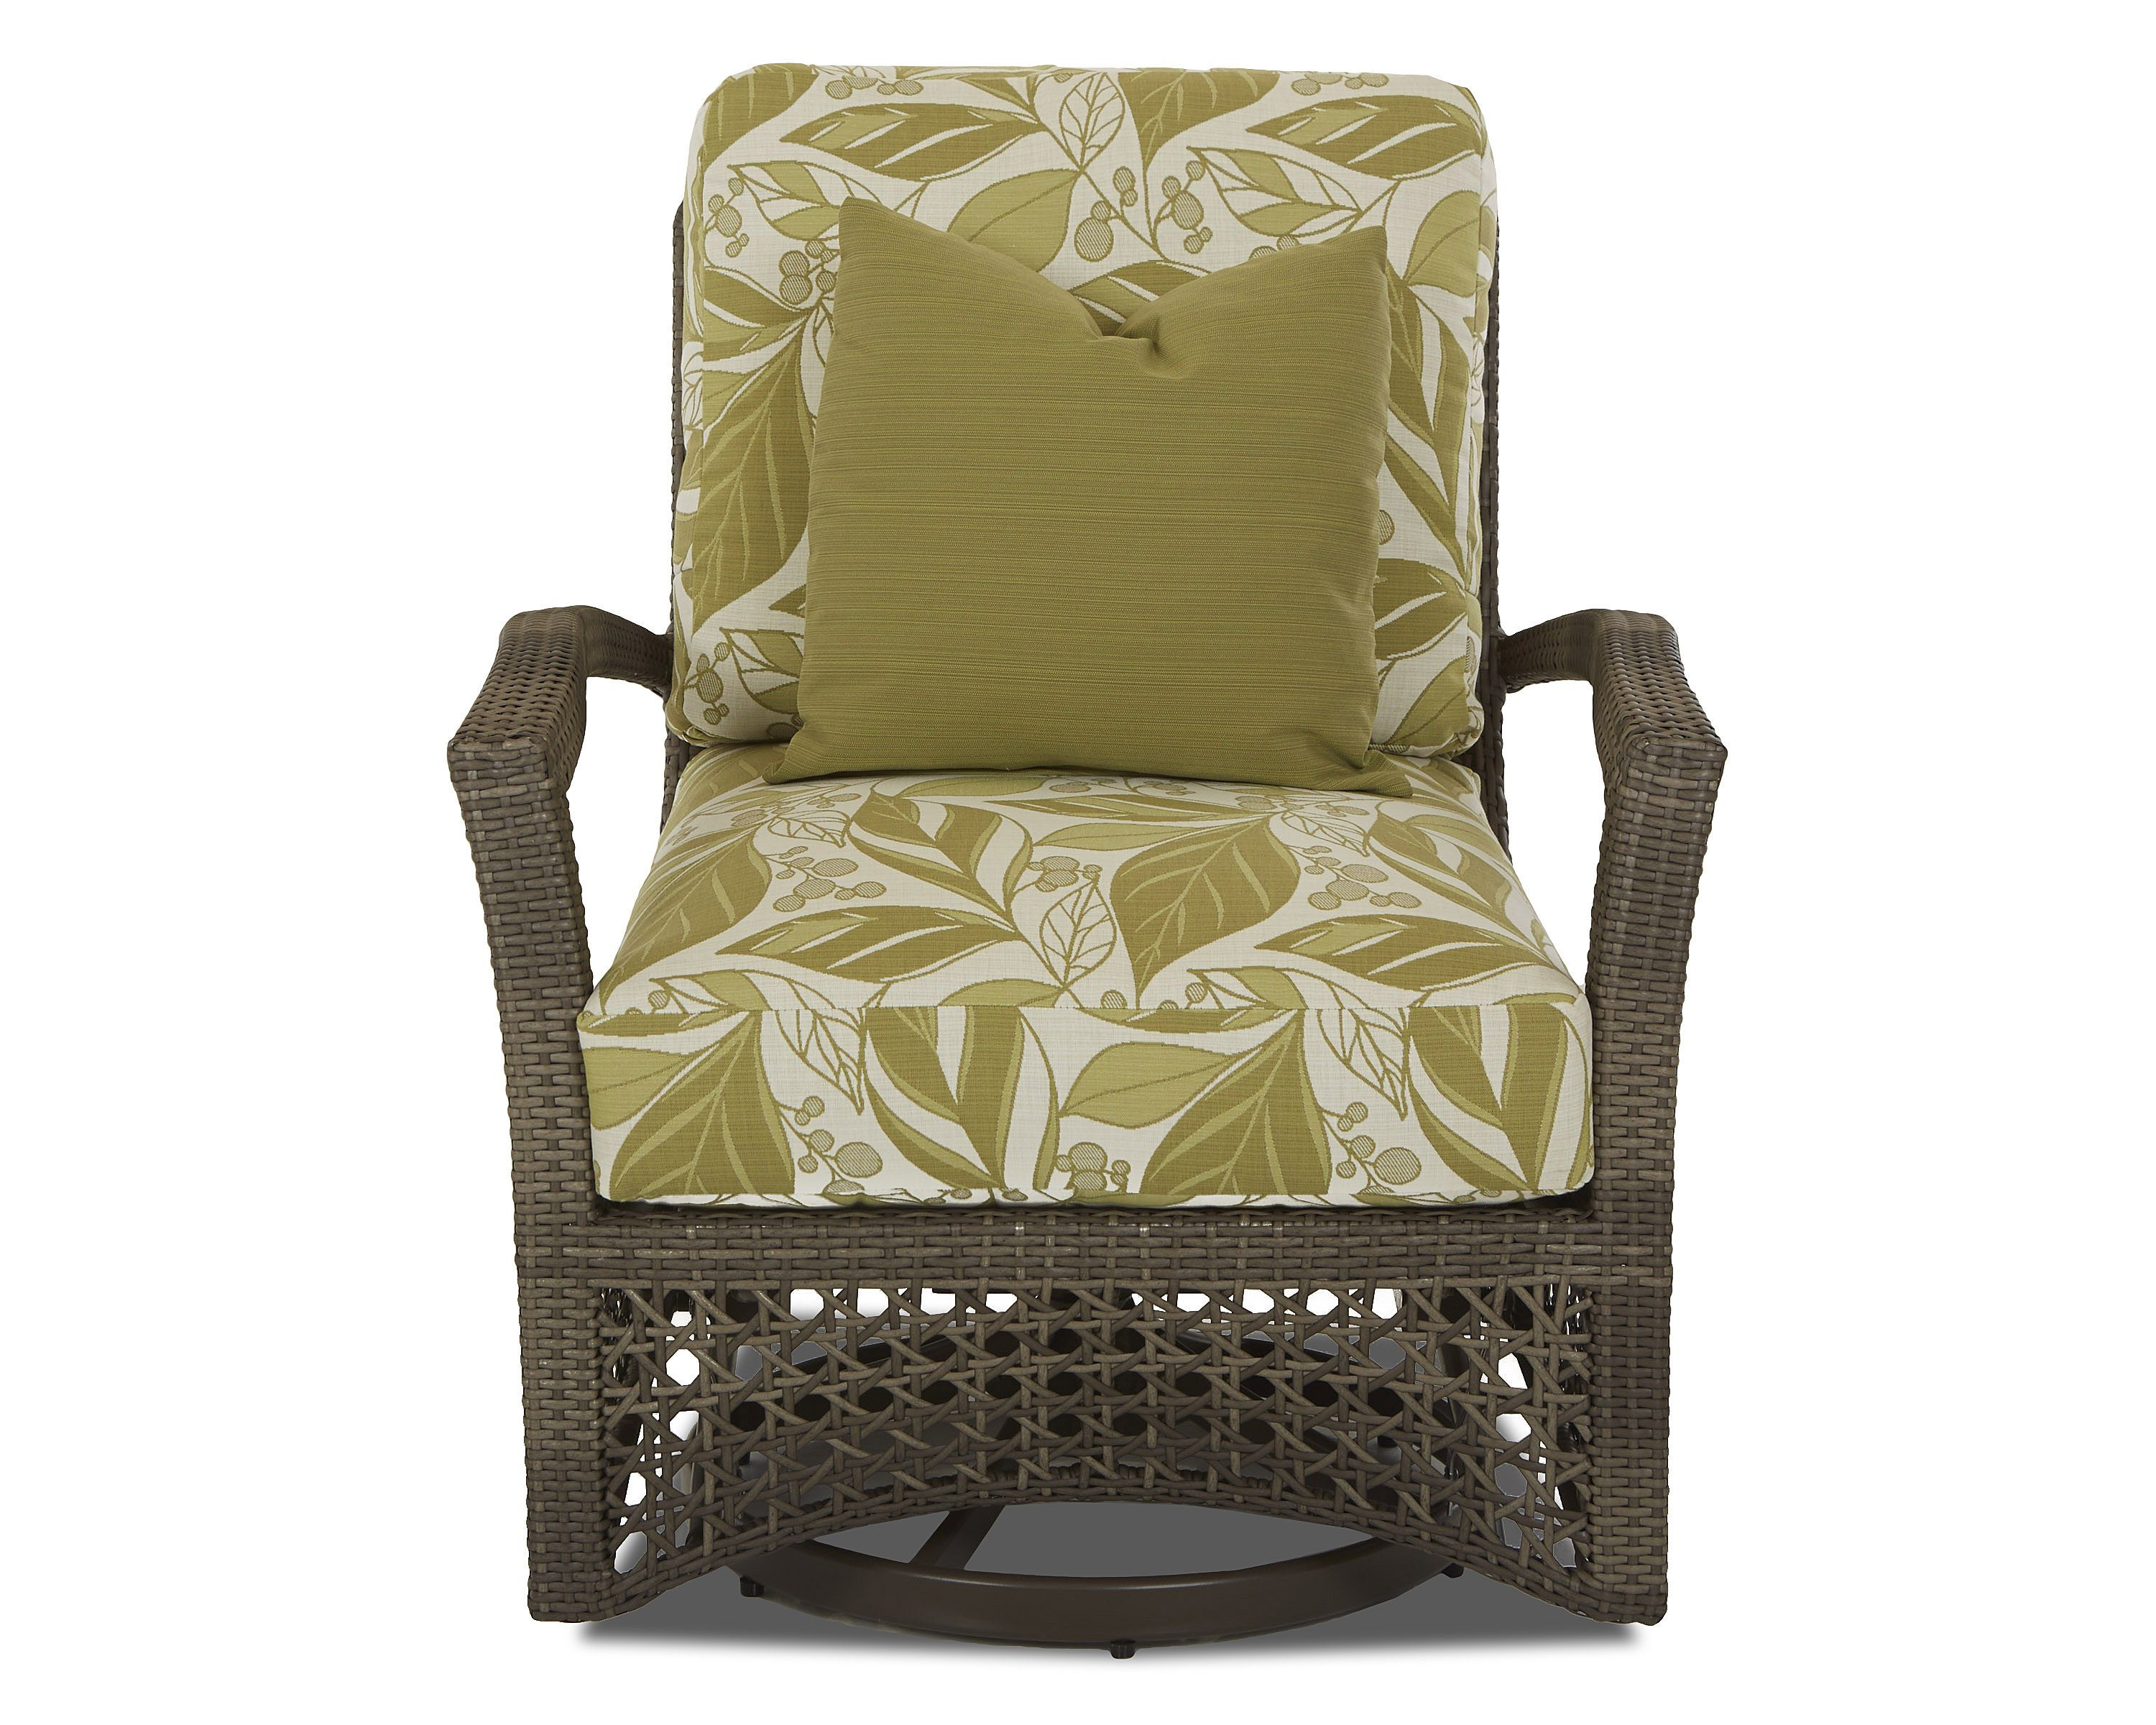 Klaussner Outdoor Outdoor/Patio Amure Swivel Glider Chair W1300 SGC    Klaussner Outdoor   Asheboro